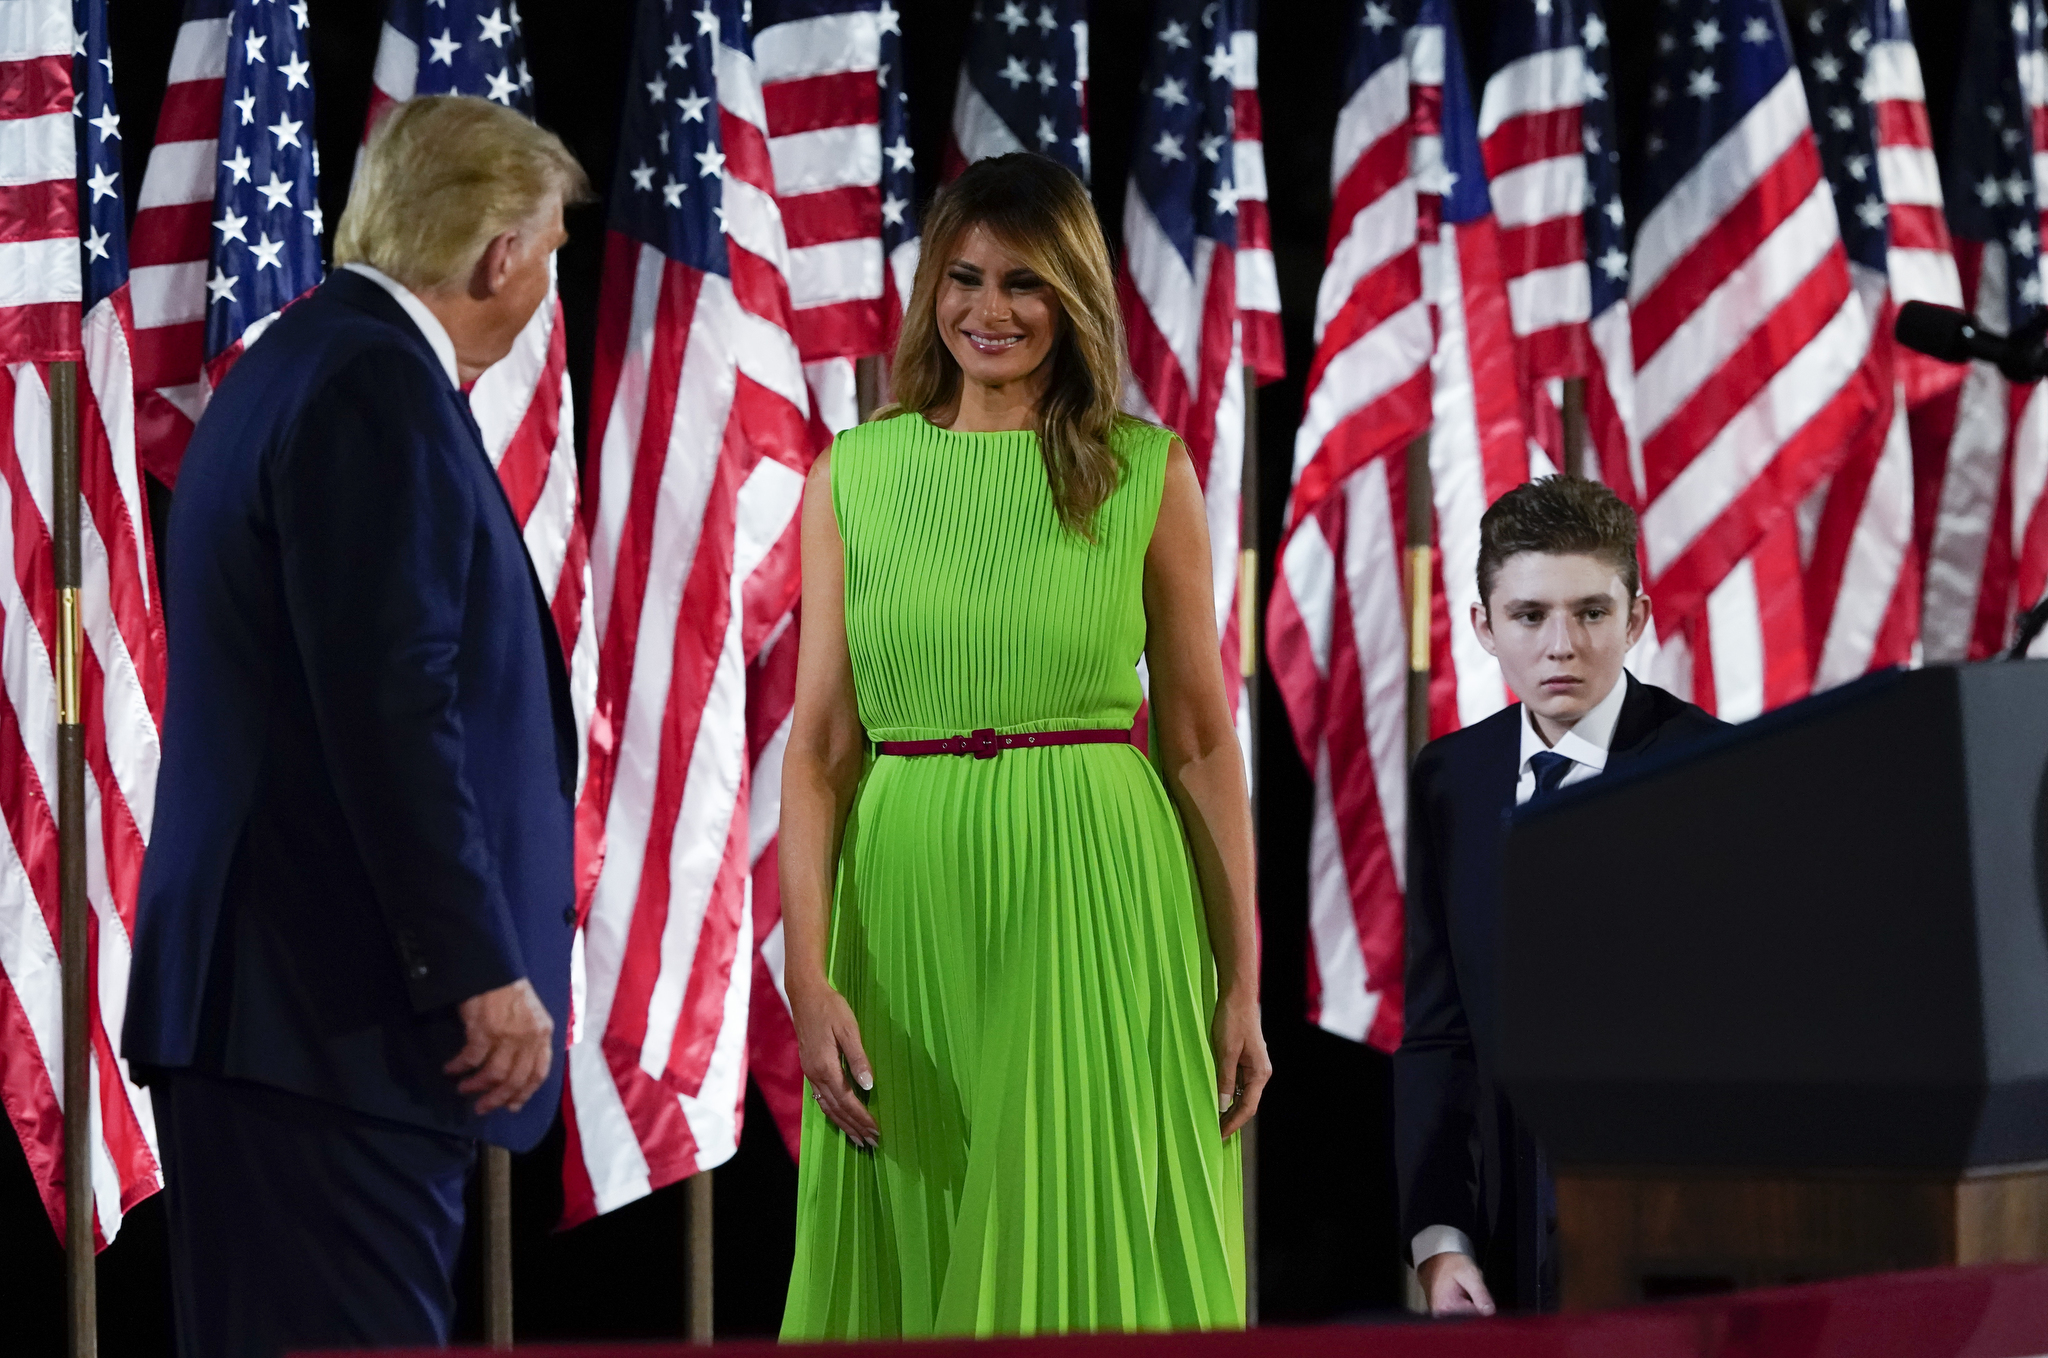 President Donald Trump, Melania Trump and Barron Trump at the Republican National Convention.